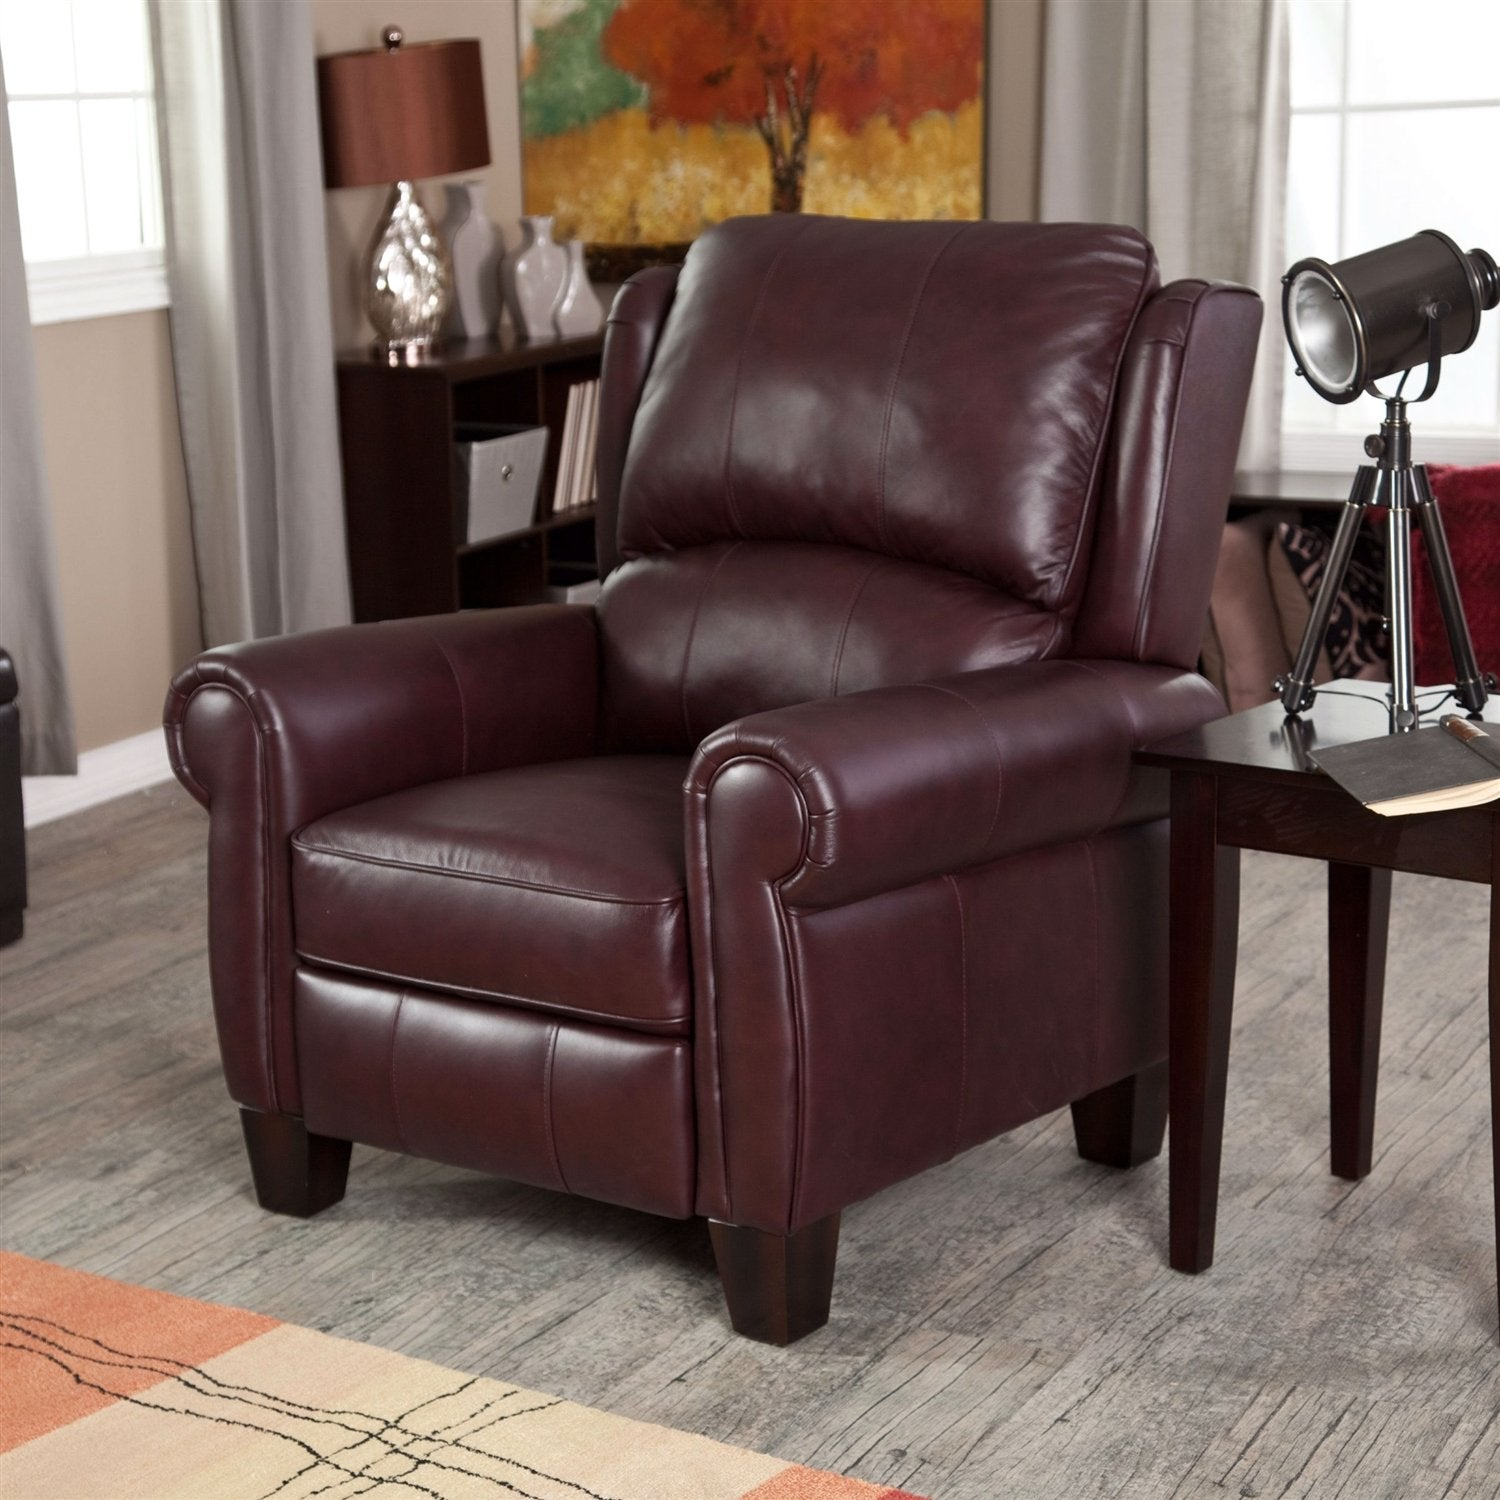 & Burgundy Top-Grain Leather Upholstered Wing-back Club Chair Recliner islam-shia.org